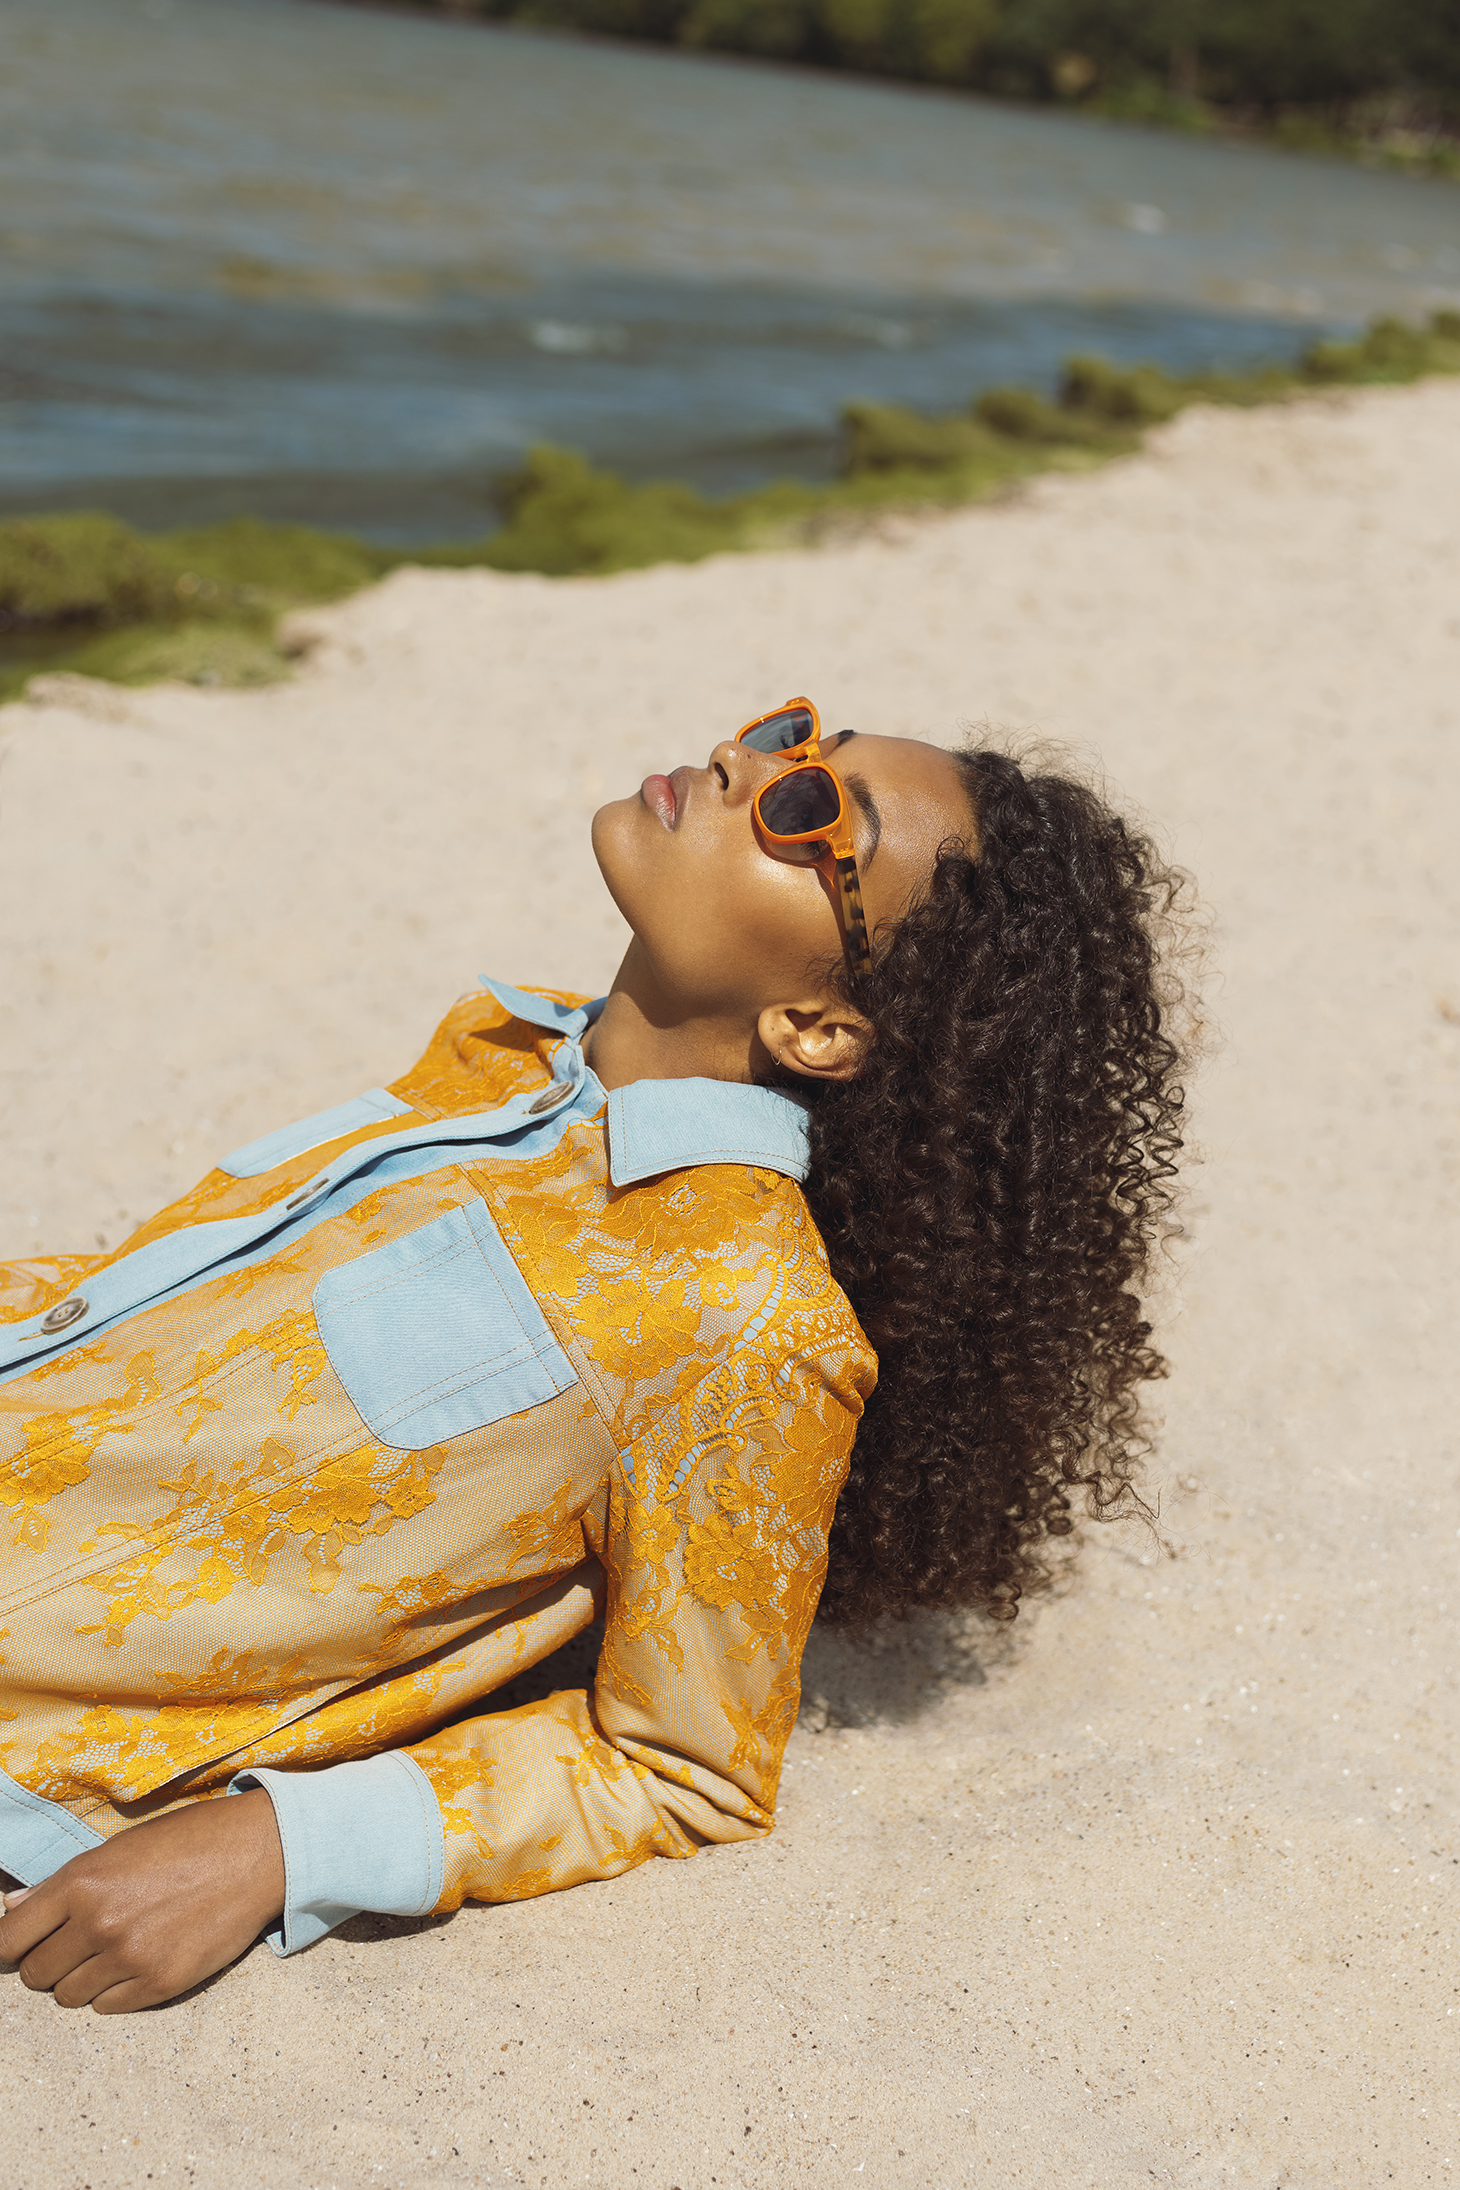 curly hair neon outfit beach sunny day curly long hair